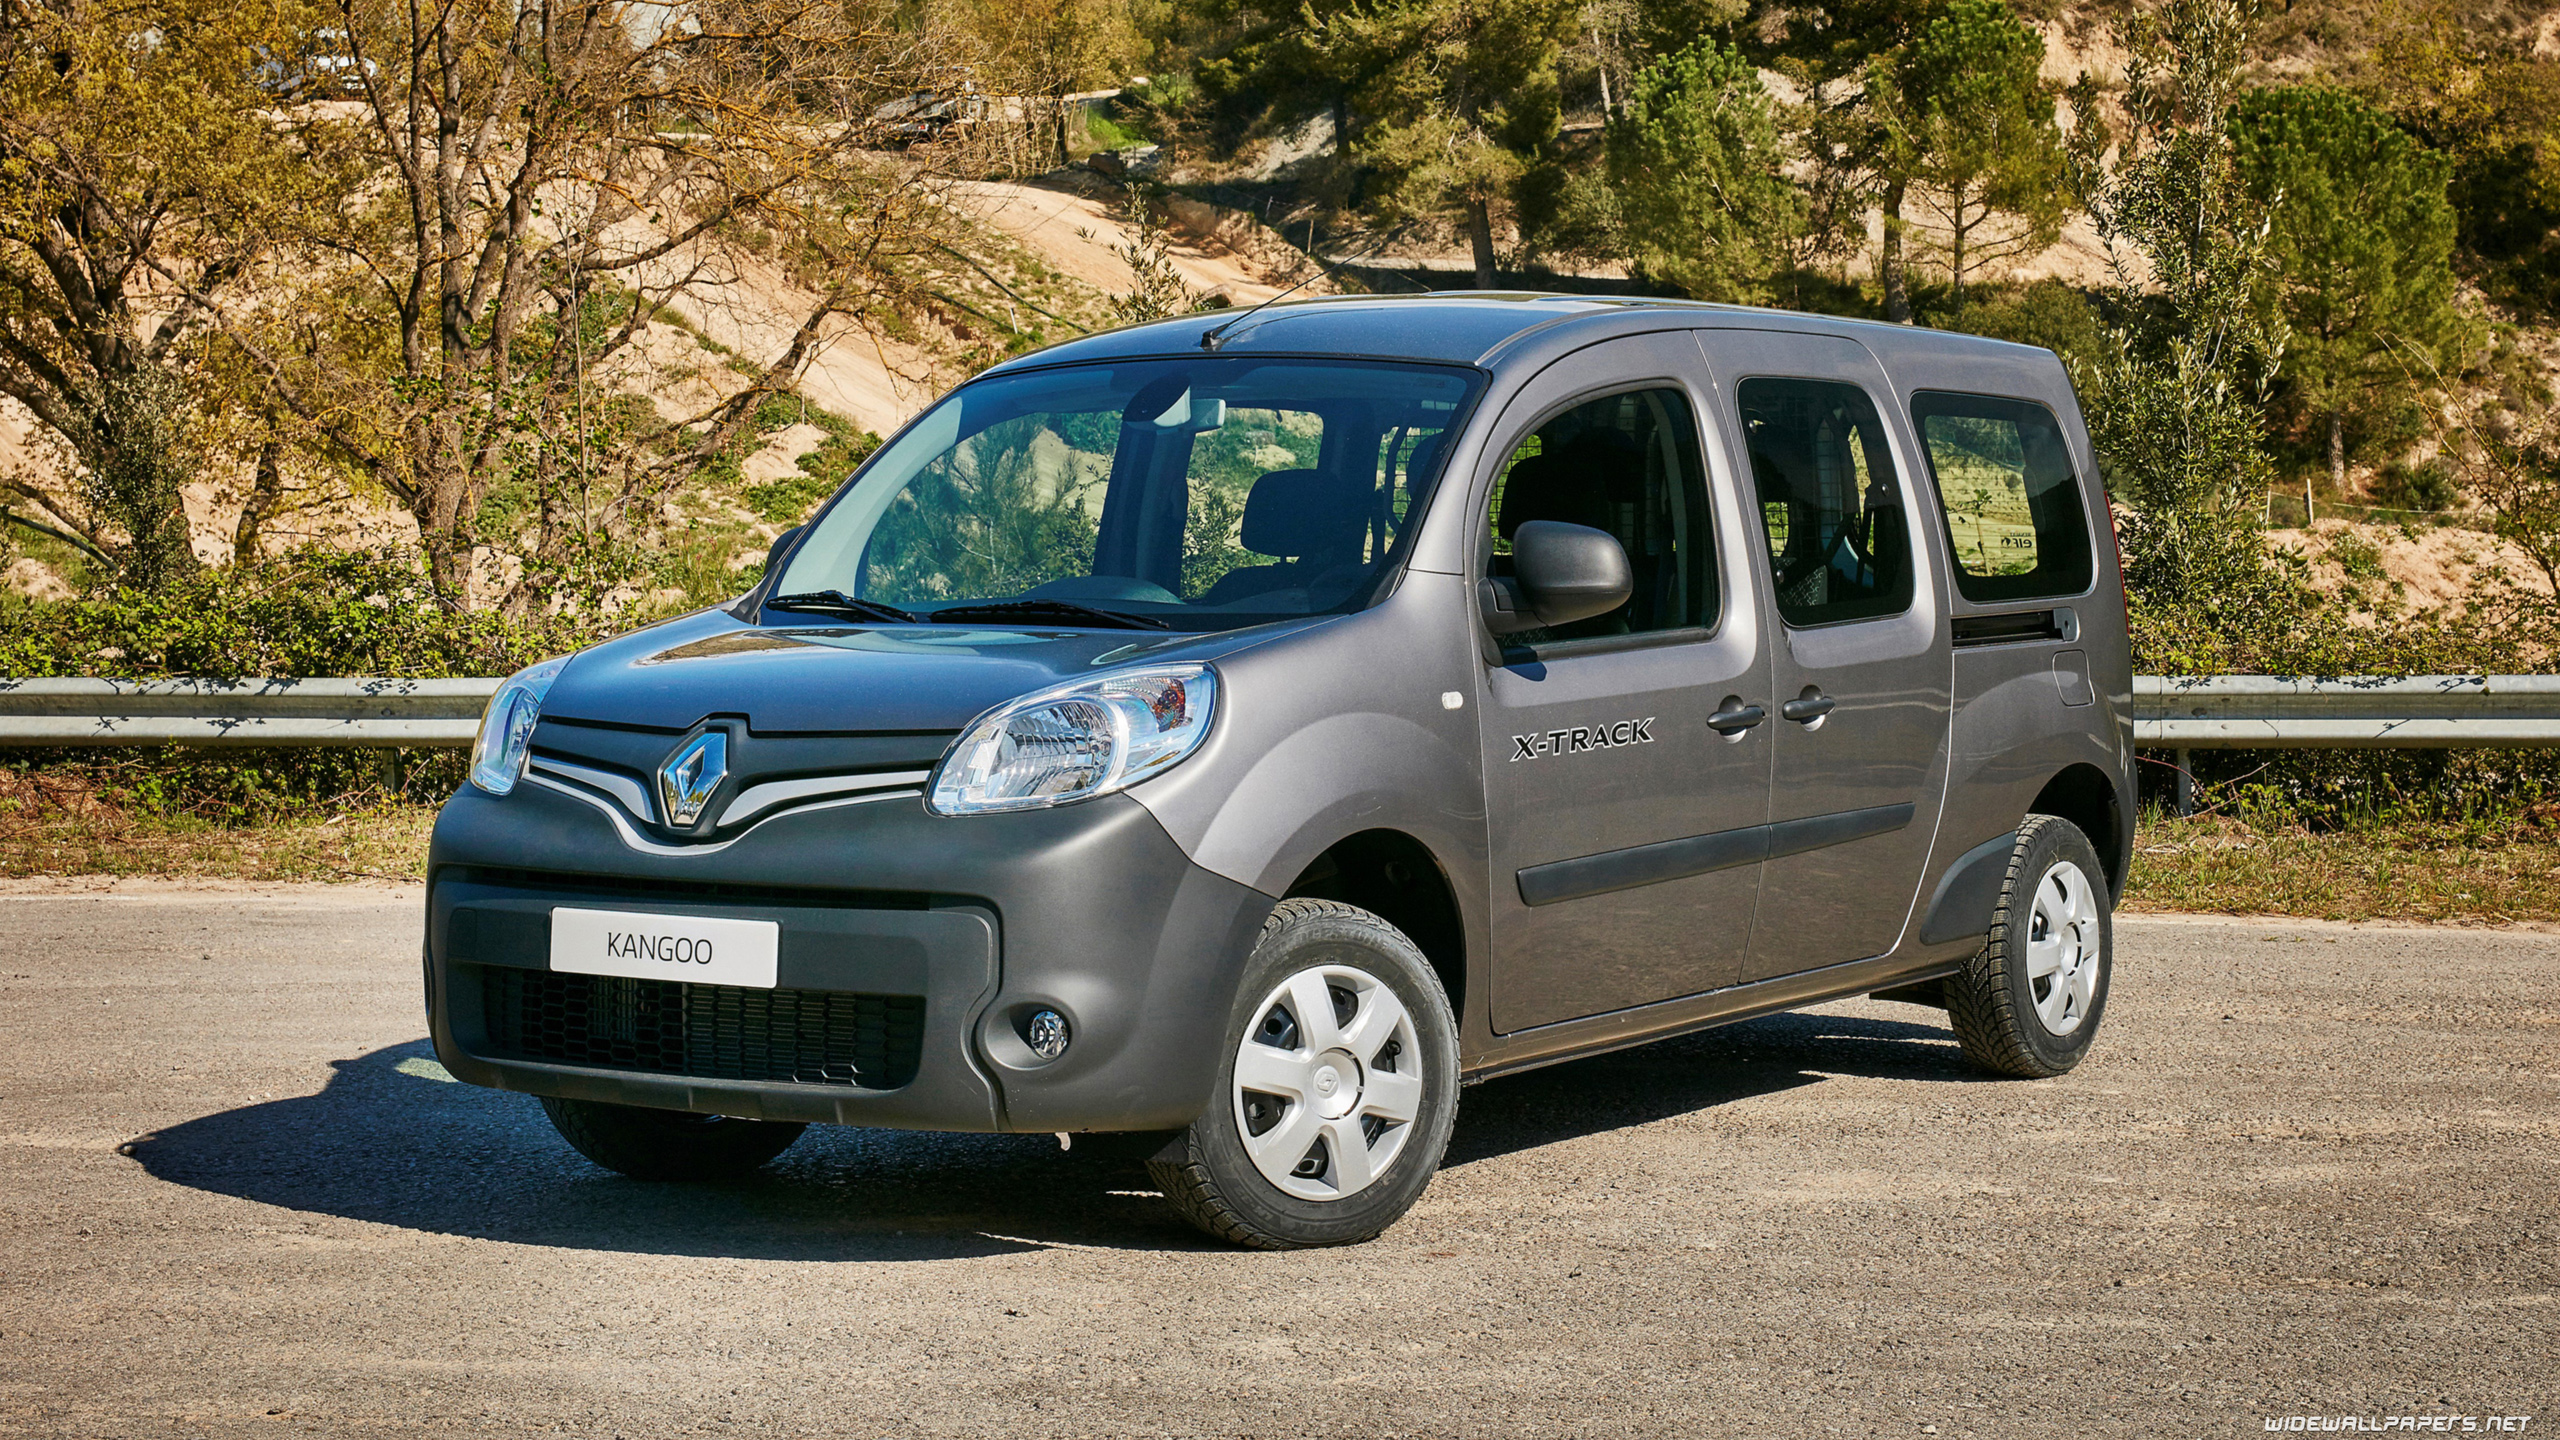 renault kangoo cars desktop wallpapers 4k ultra hd. Black Bedroom Furniture Sets. Home Design Ideas